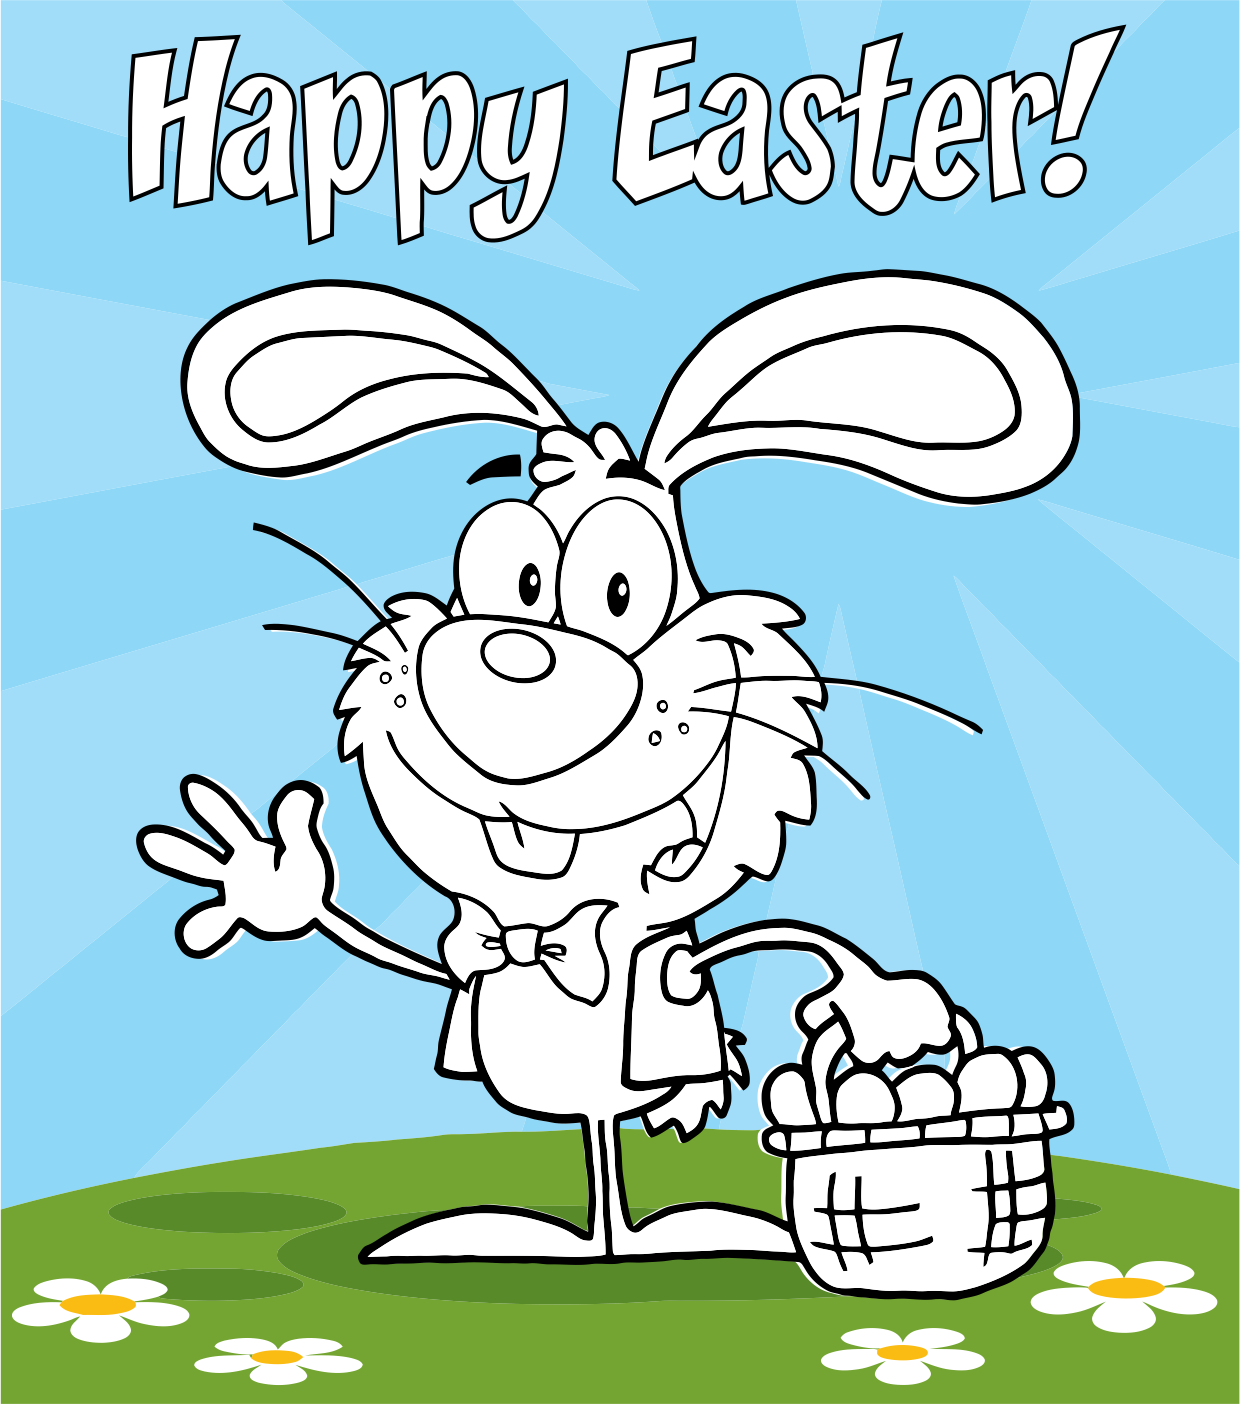 Effortless image with happy easter cards printable